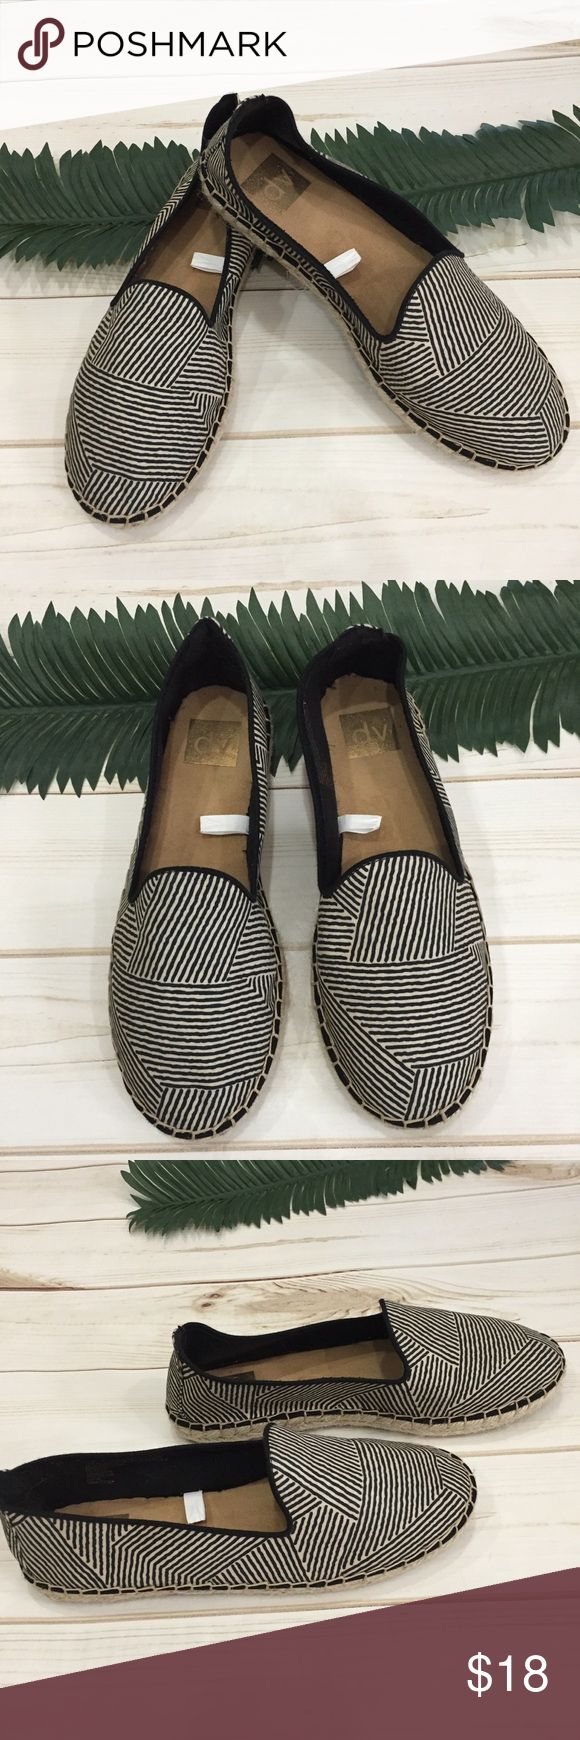 🌹DV Super cute stunning espadrille slip one! 🌹DV Super cute stunning espadrille slip one! These are all day comfort espadrilles work black and cream line BOHO design. Rope bottoms for added comfort. Preloved in excellent condition. Worn once. No obvious wear. DV by Dolce Vita Shoes Espadrilles